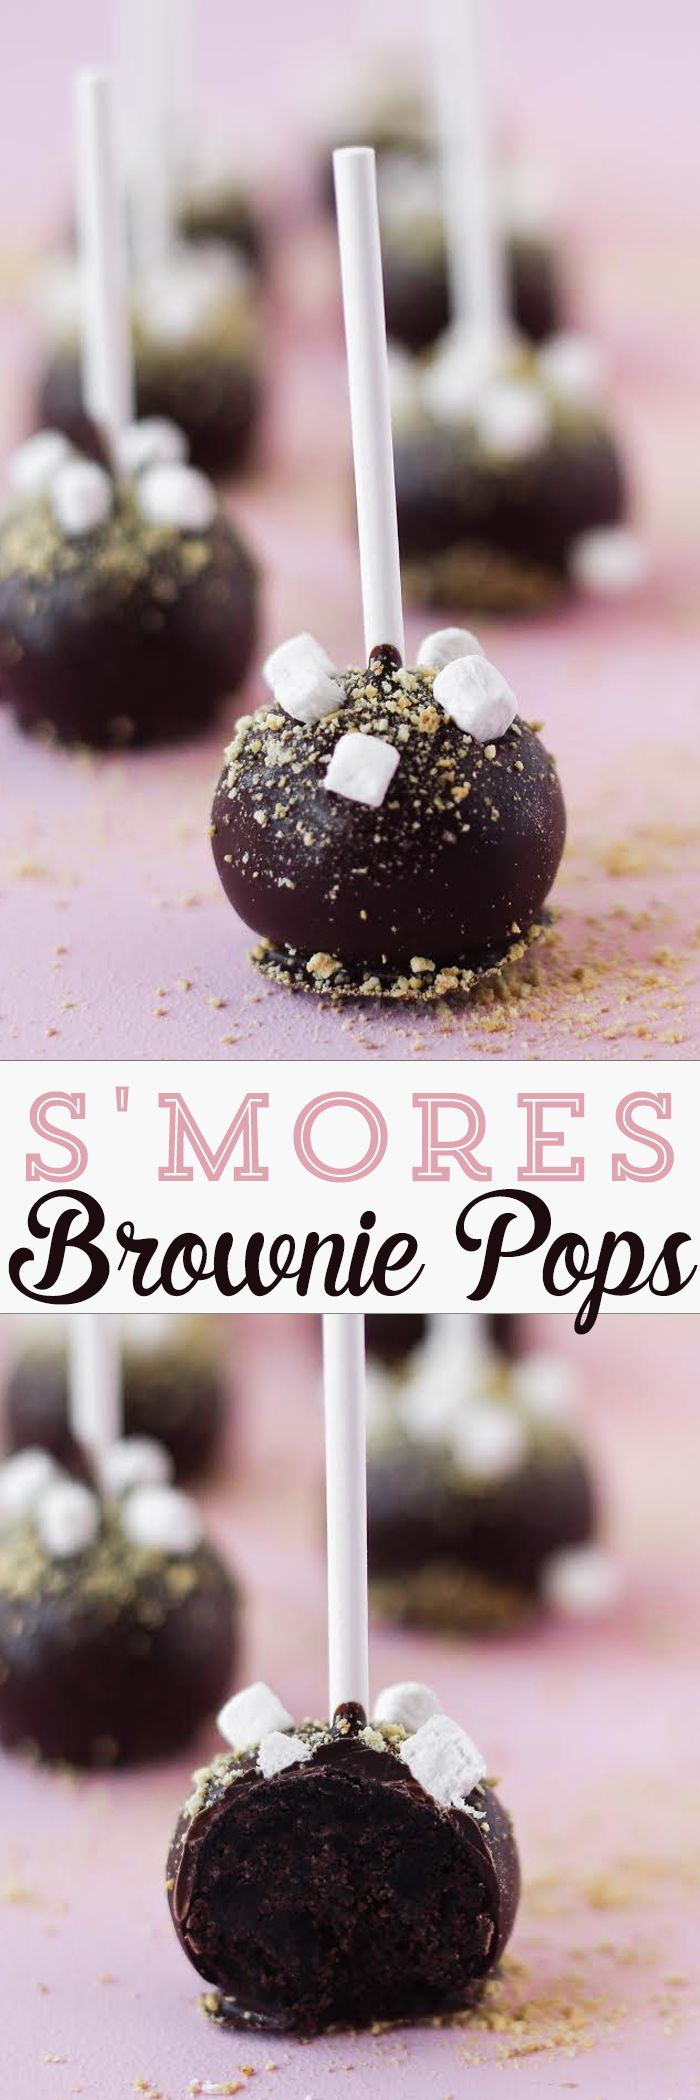 S'mores Brownie Pops - simple step-by-step instructions and a list of ingredients.